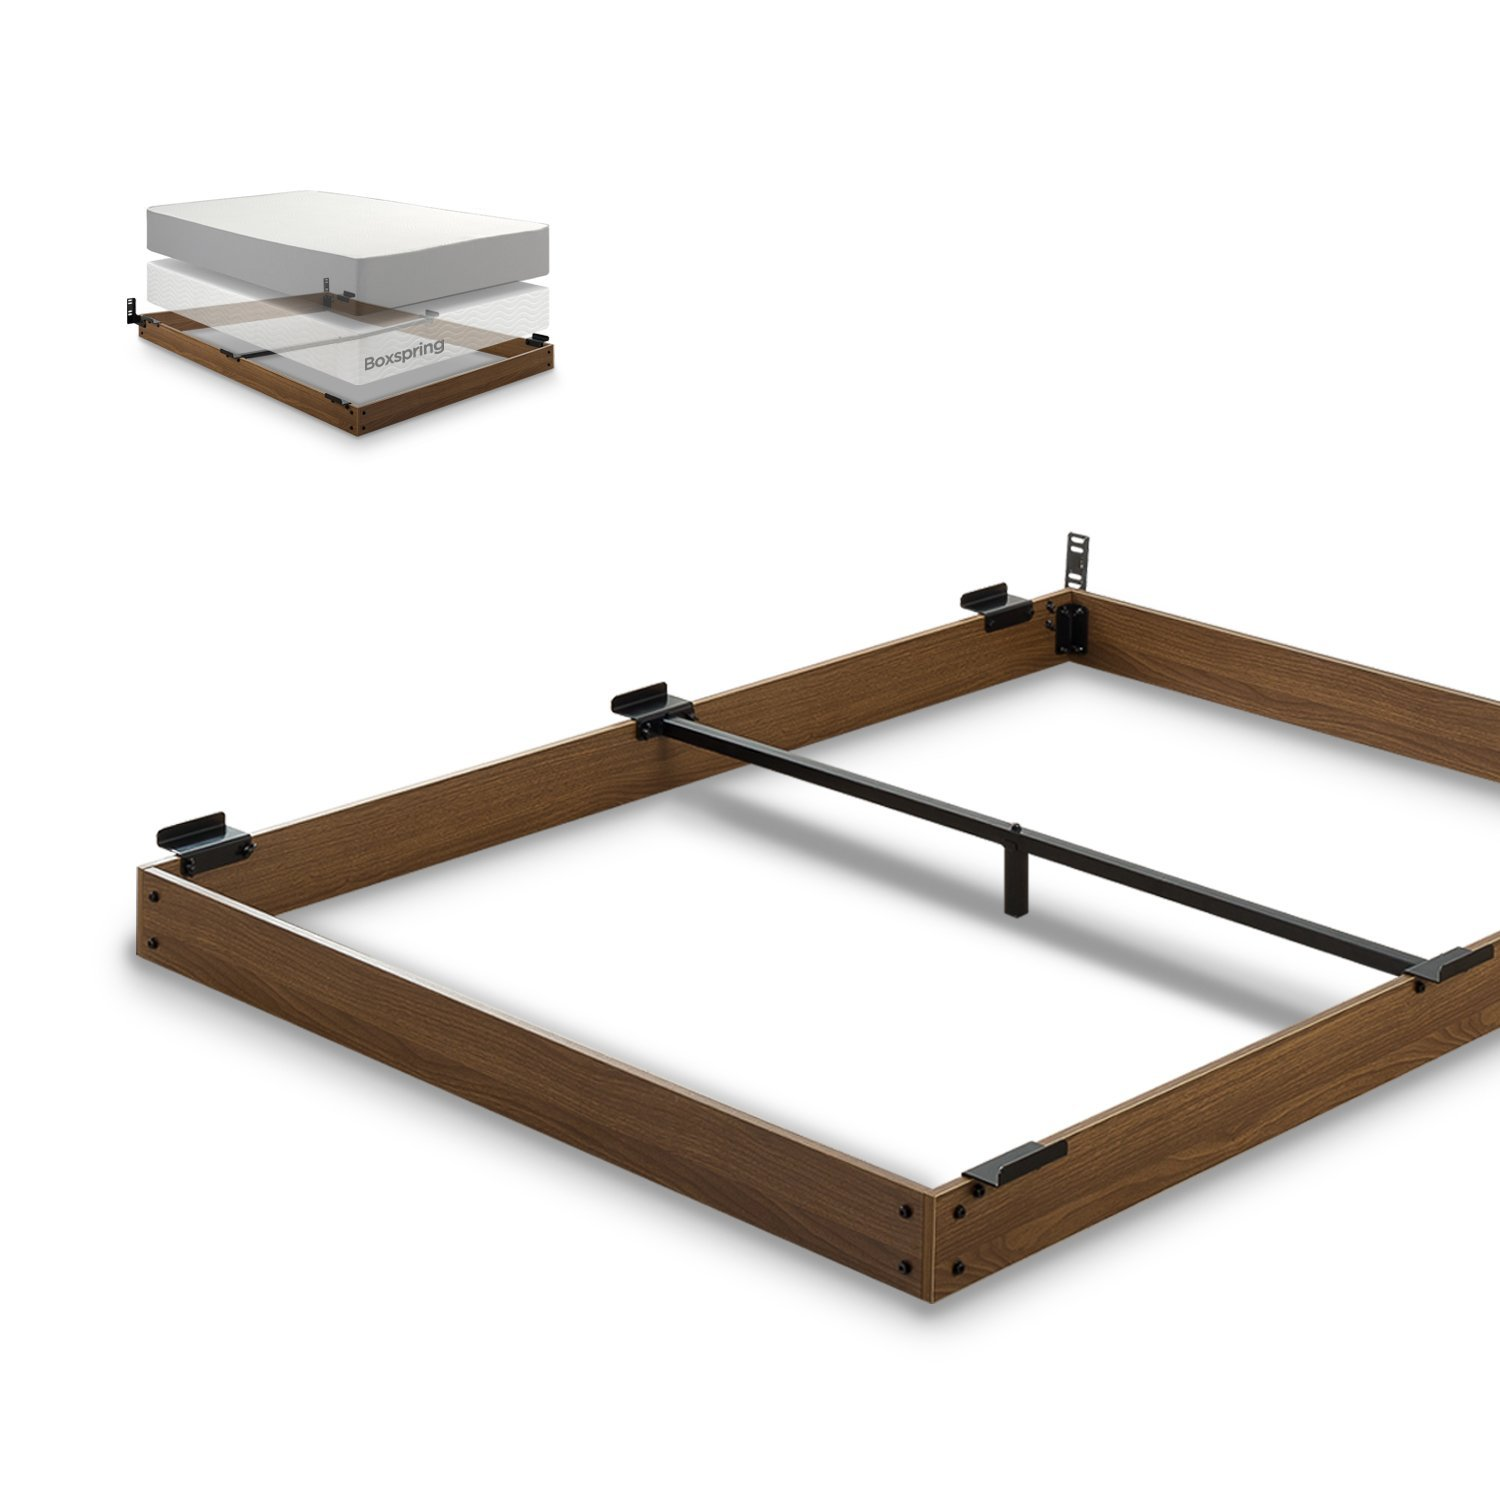 Zinus 5 Inch Wood Bed Frame for Box Spring & Mattress Set, Keep Pets From Beneath Your Bed, Full